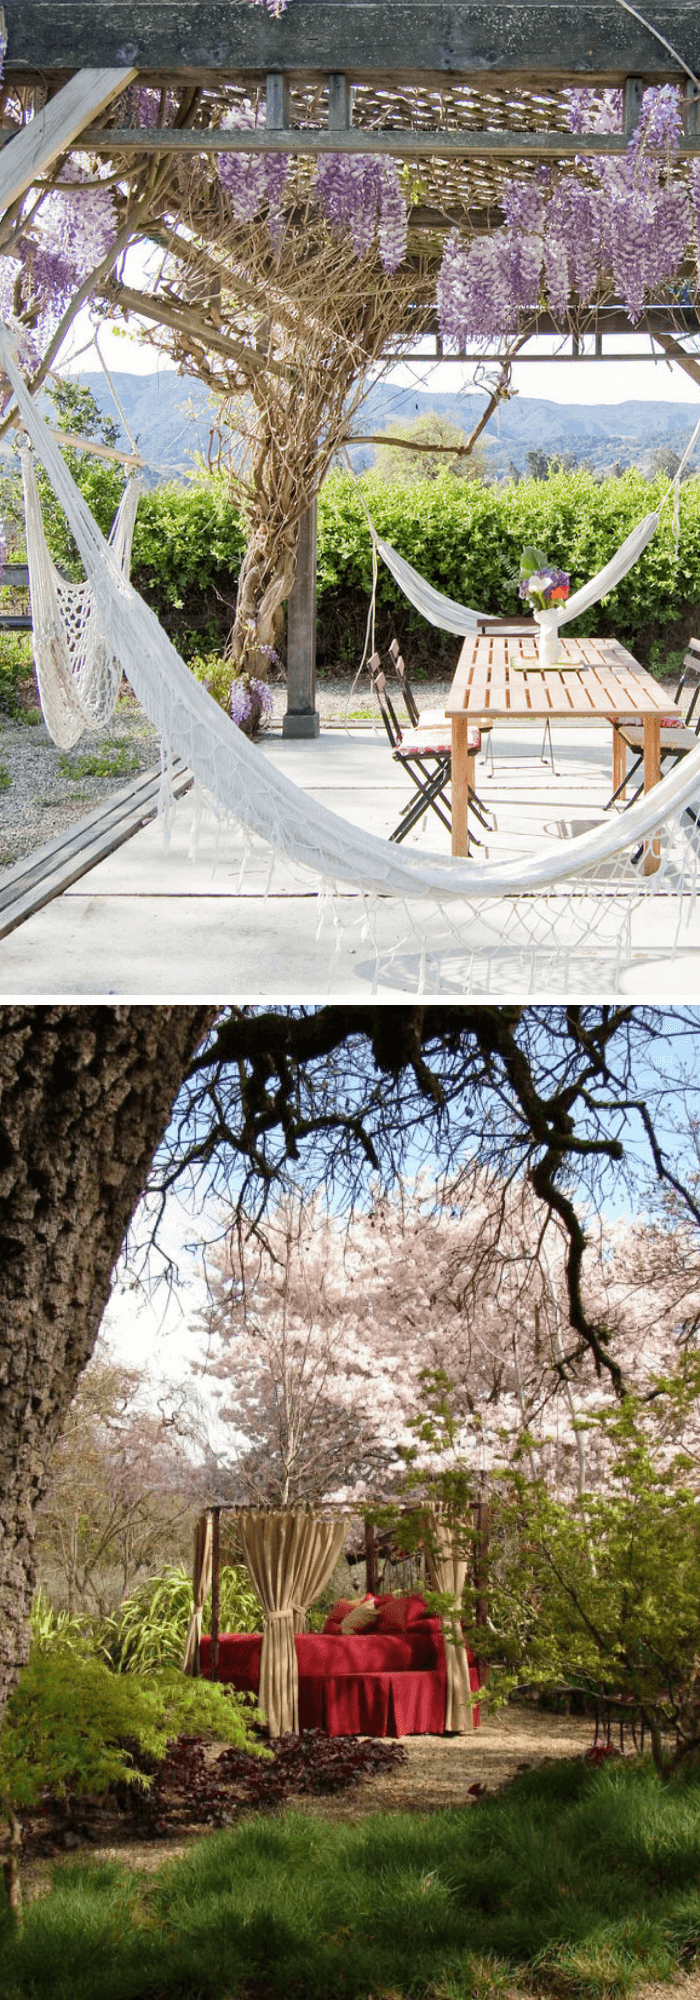 best backyard hammock ideas Romantic Retreat